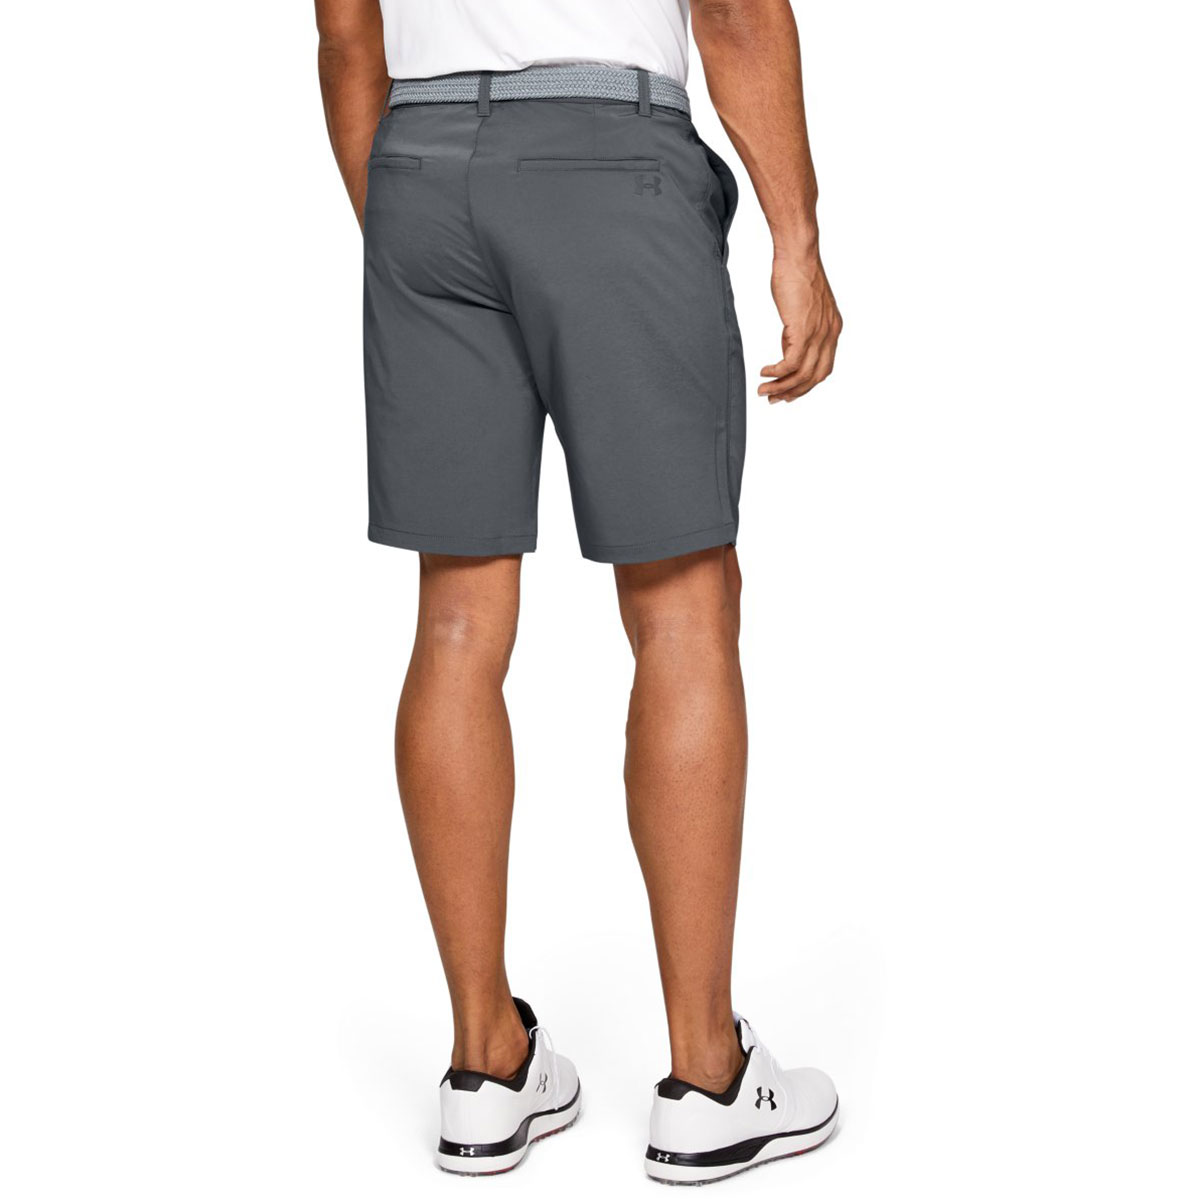 Under-Armour-Mens-2019-EU-Tech-Stretch-Soft-Tapered-Fitted-Golf-Shorts Indexbild 11